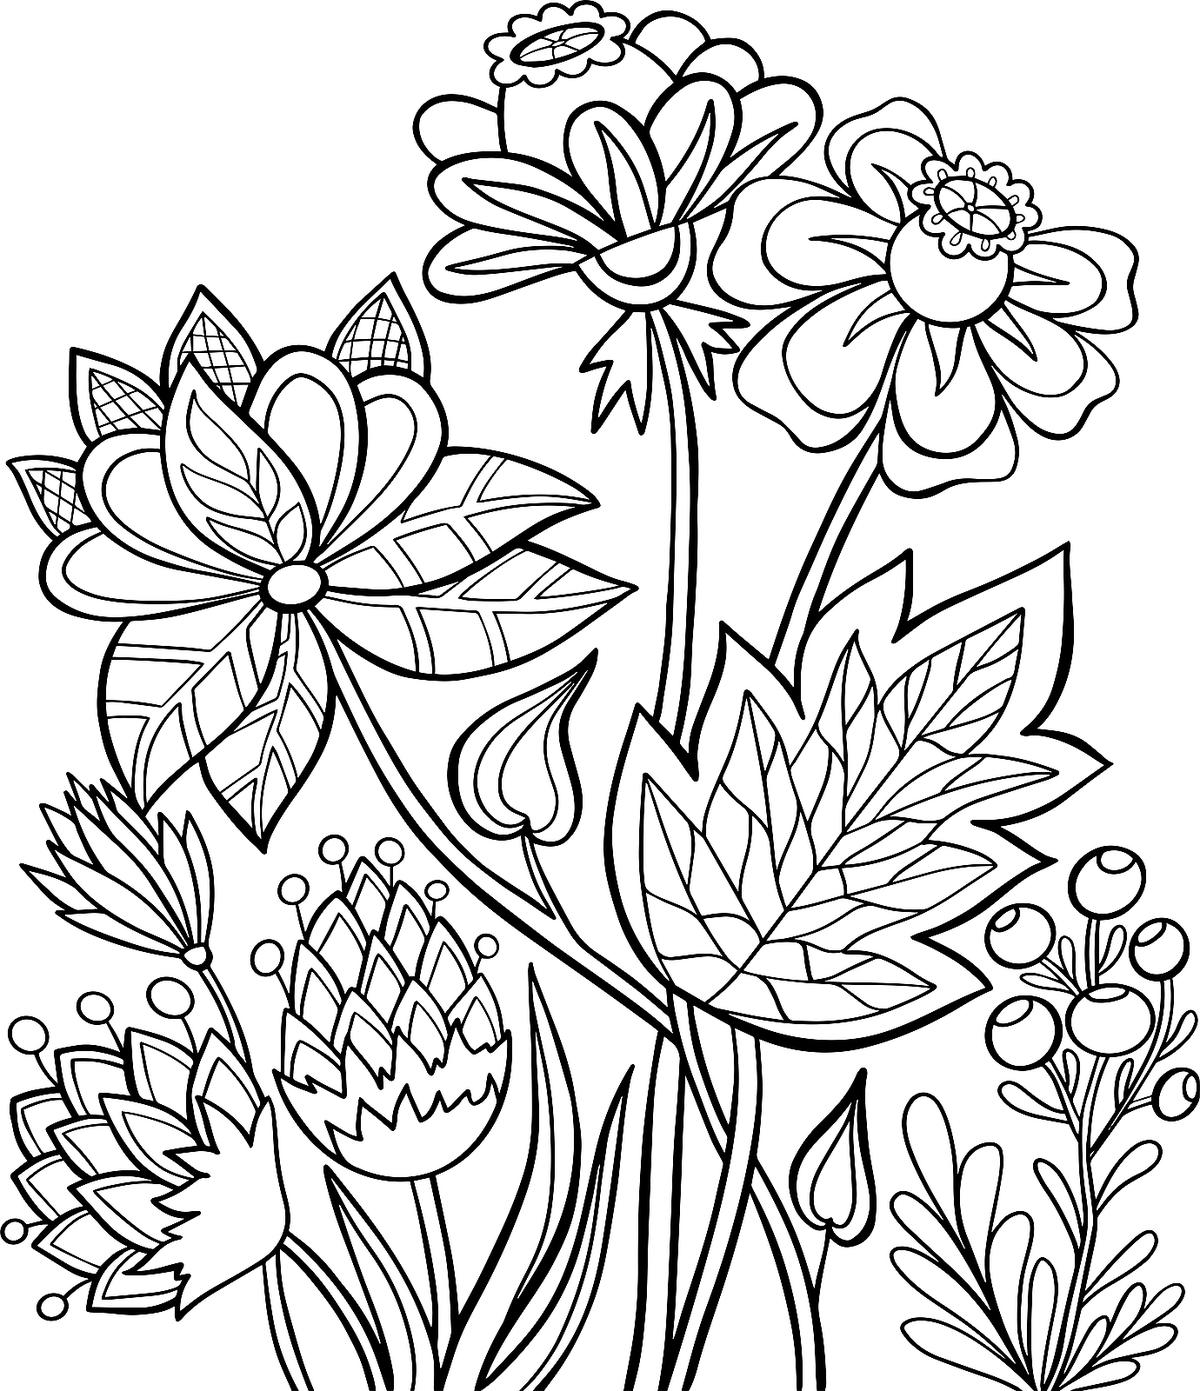 flowers coloring pages printable free printable flower coloring pages for kids best flowers printable pages coloring